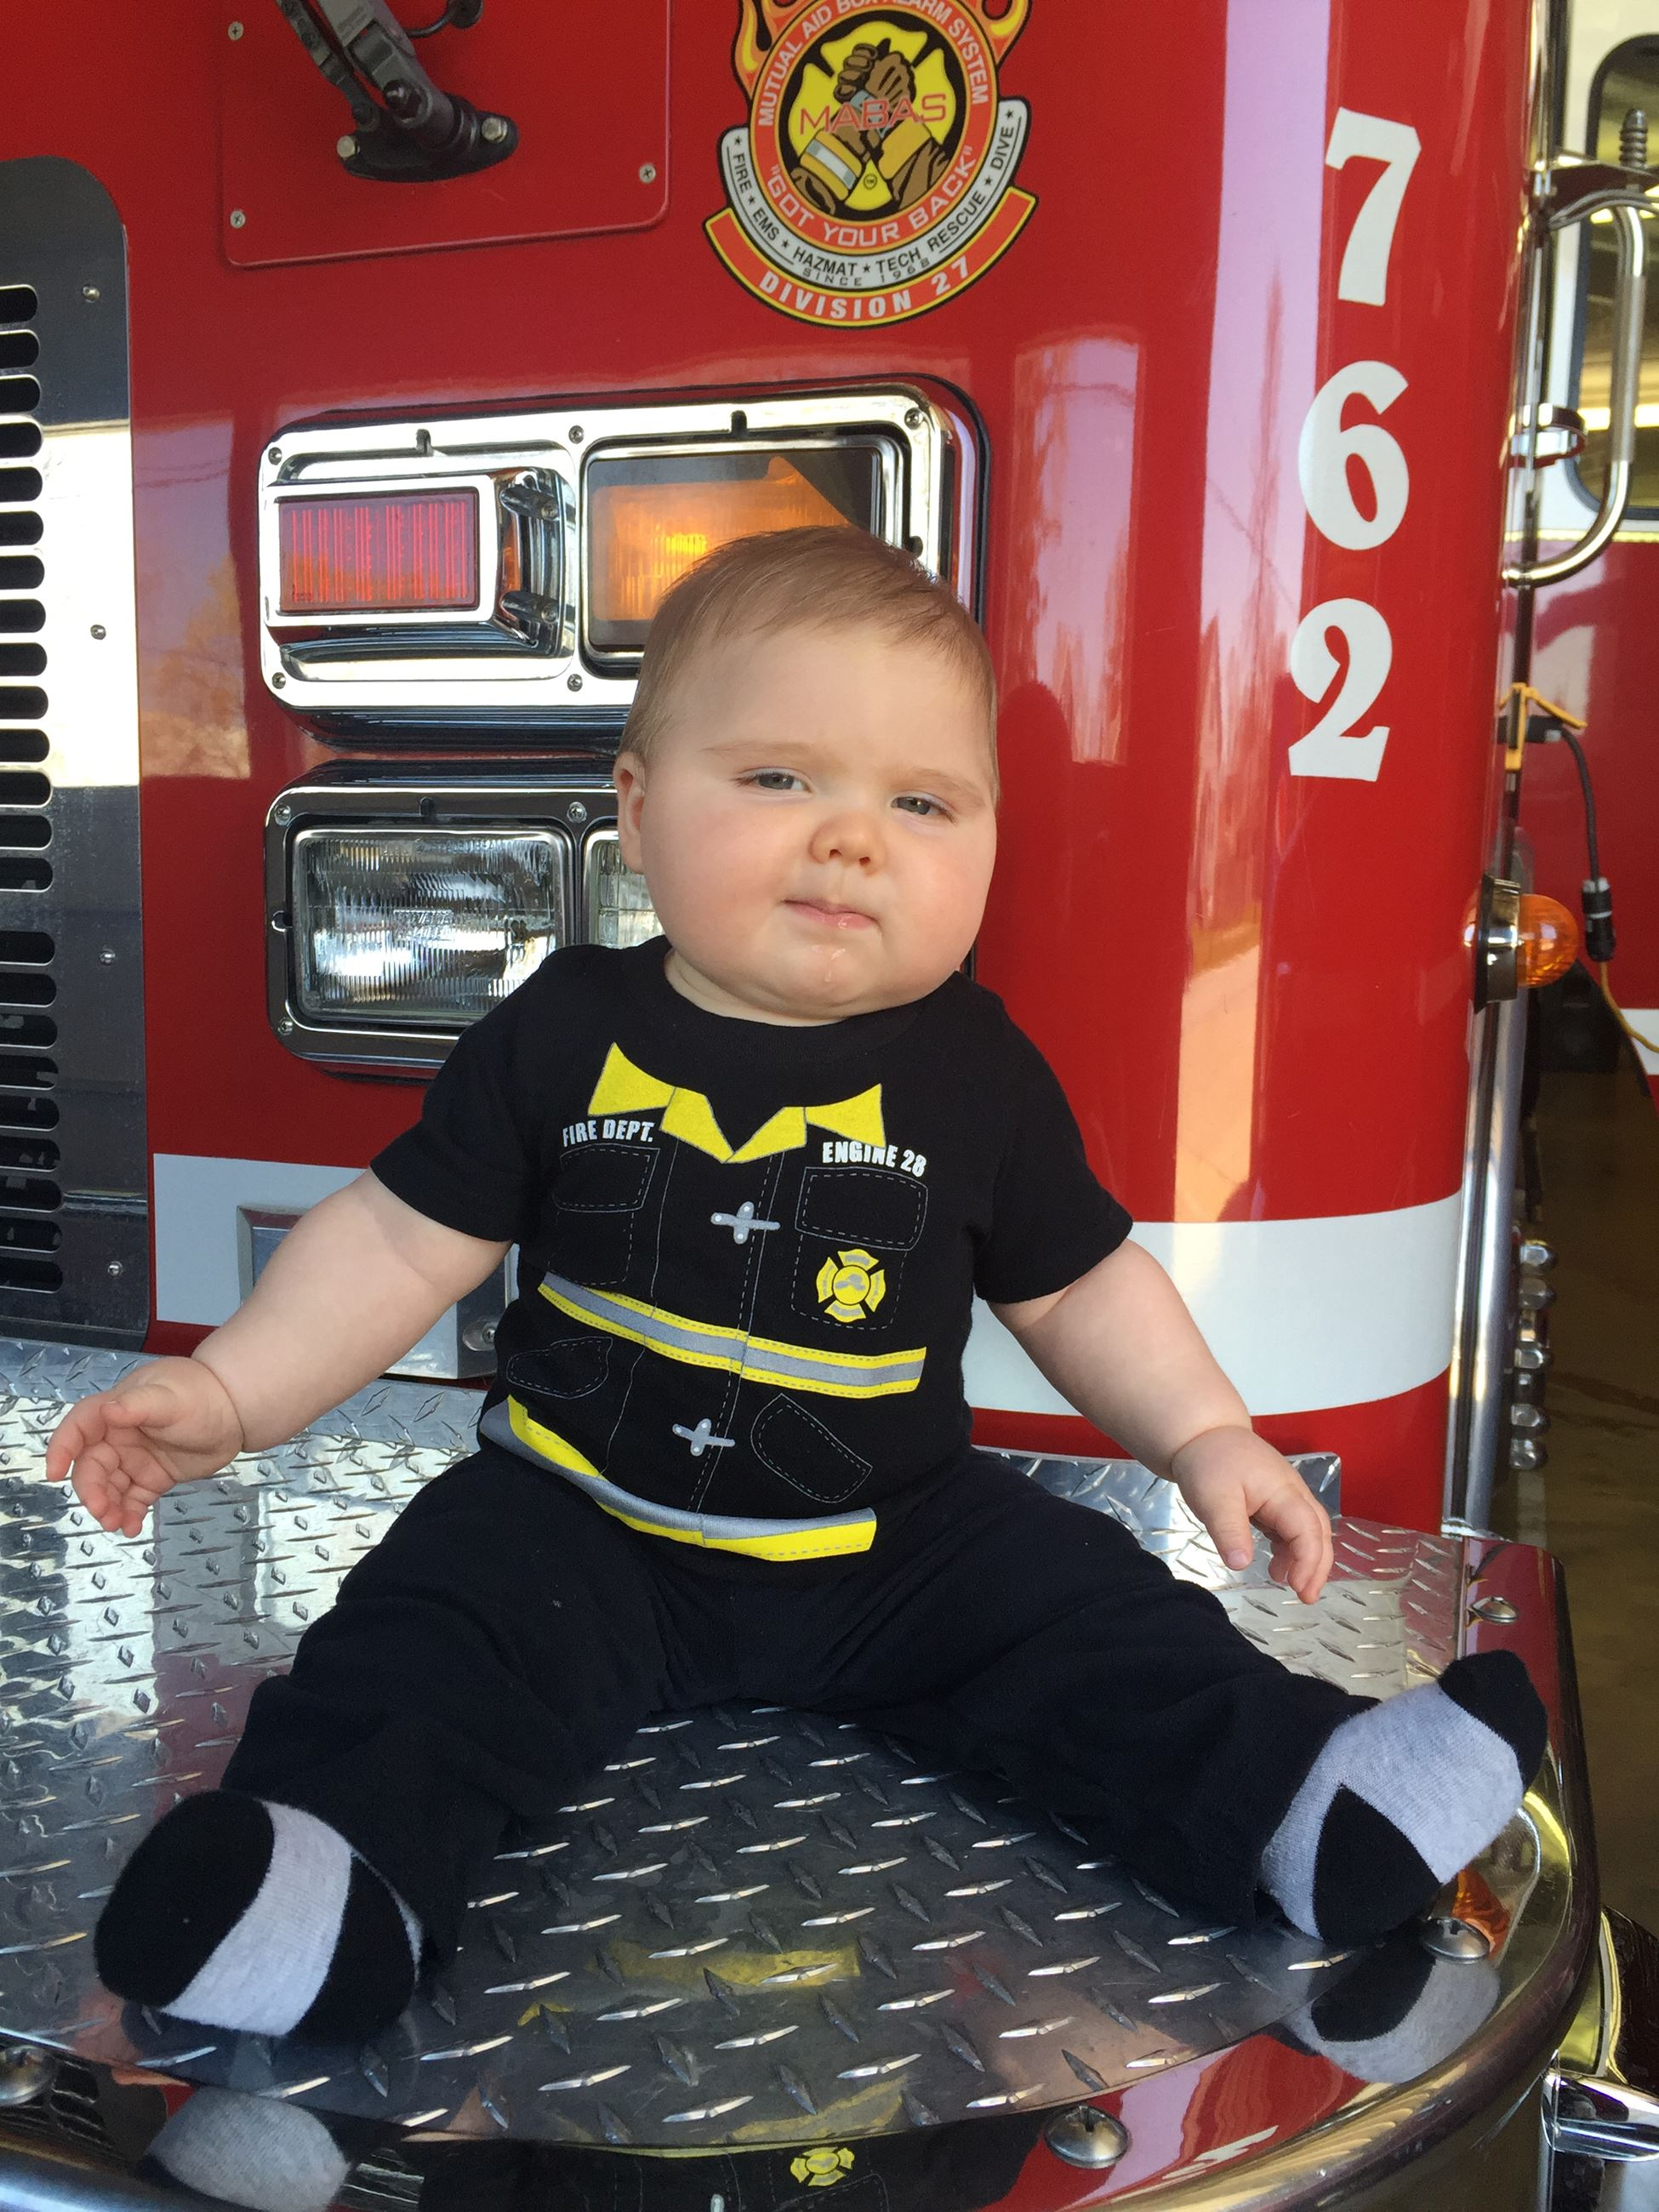 Baby dressed in a onesie that looks like a firefighter's uniform